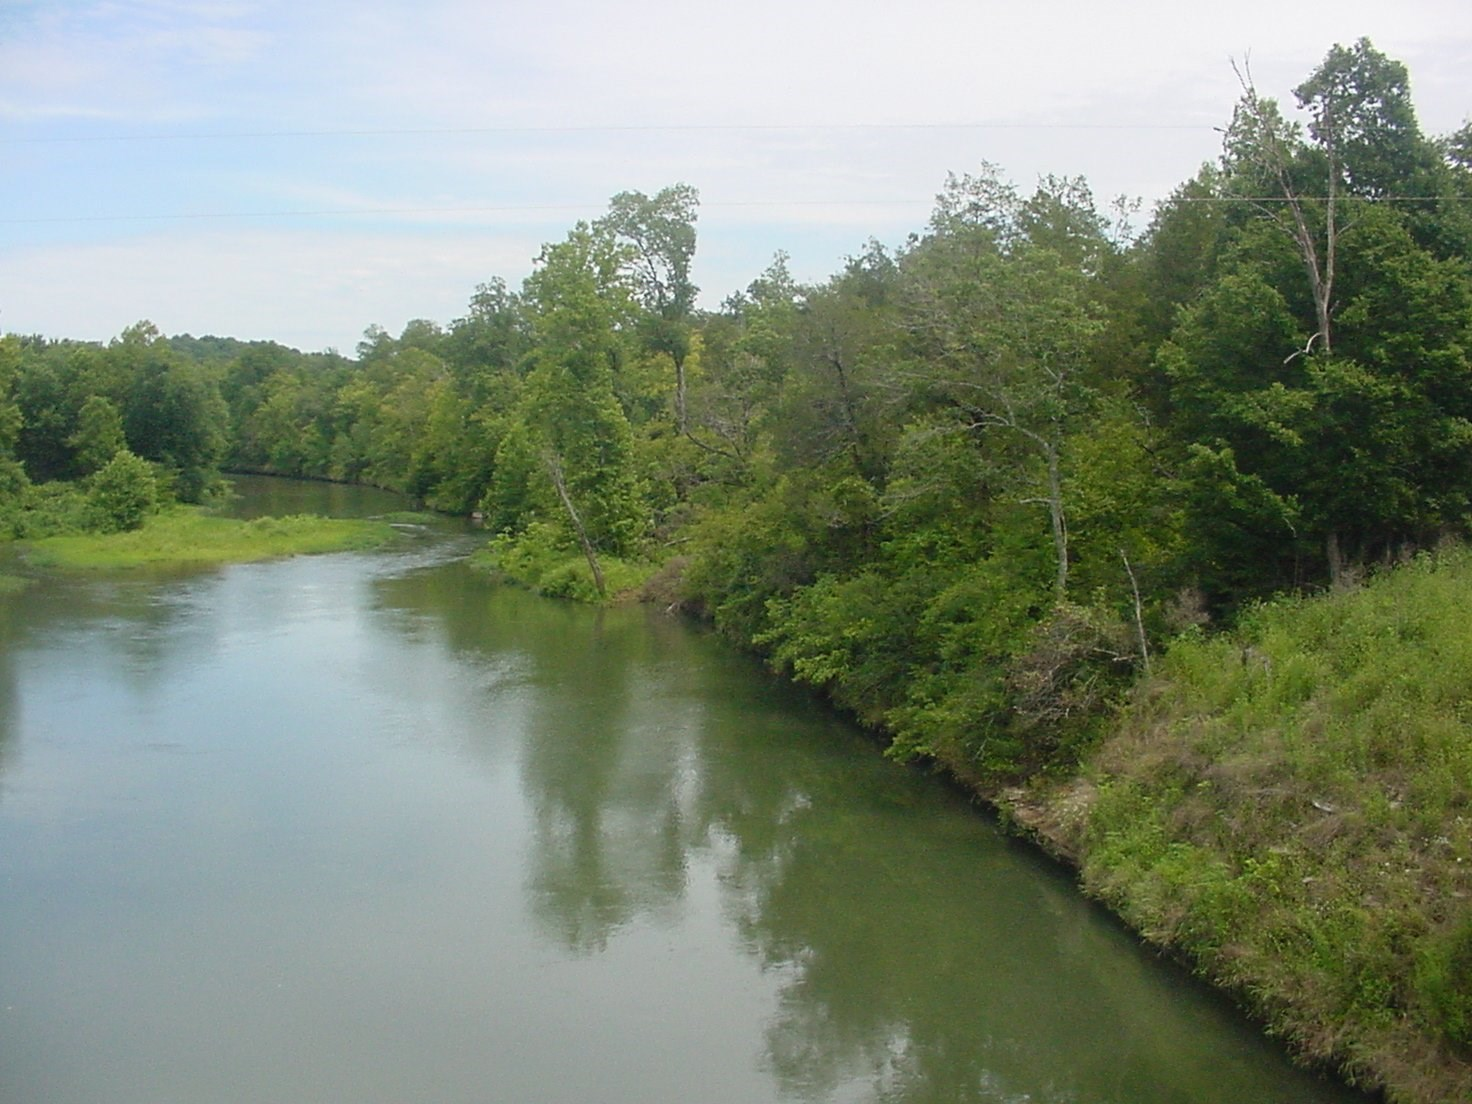 For Sale Tn Buffalo River Front Land 52 Acre County Road